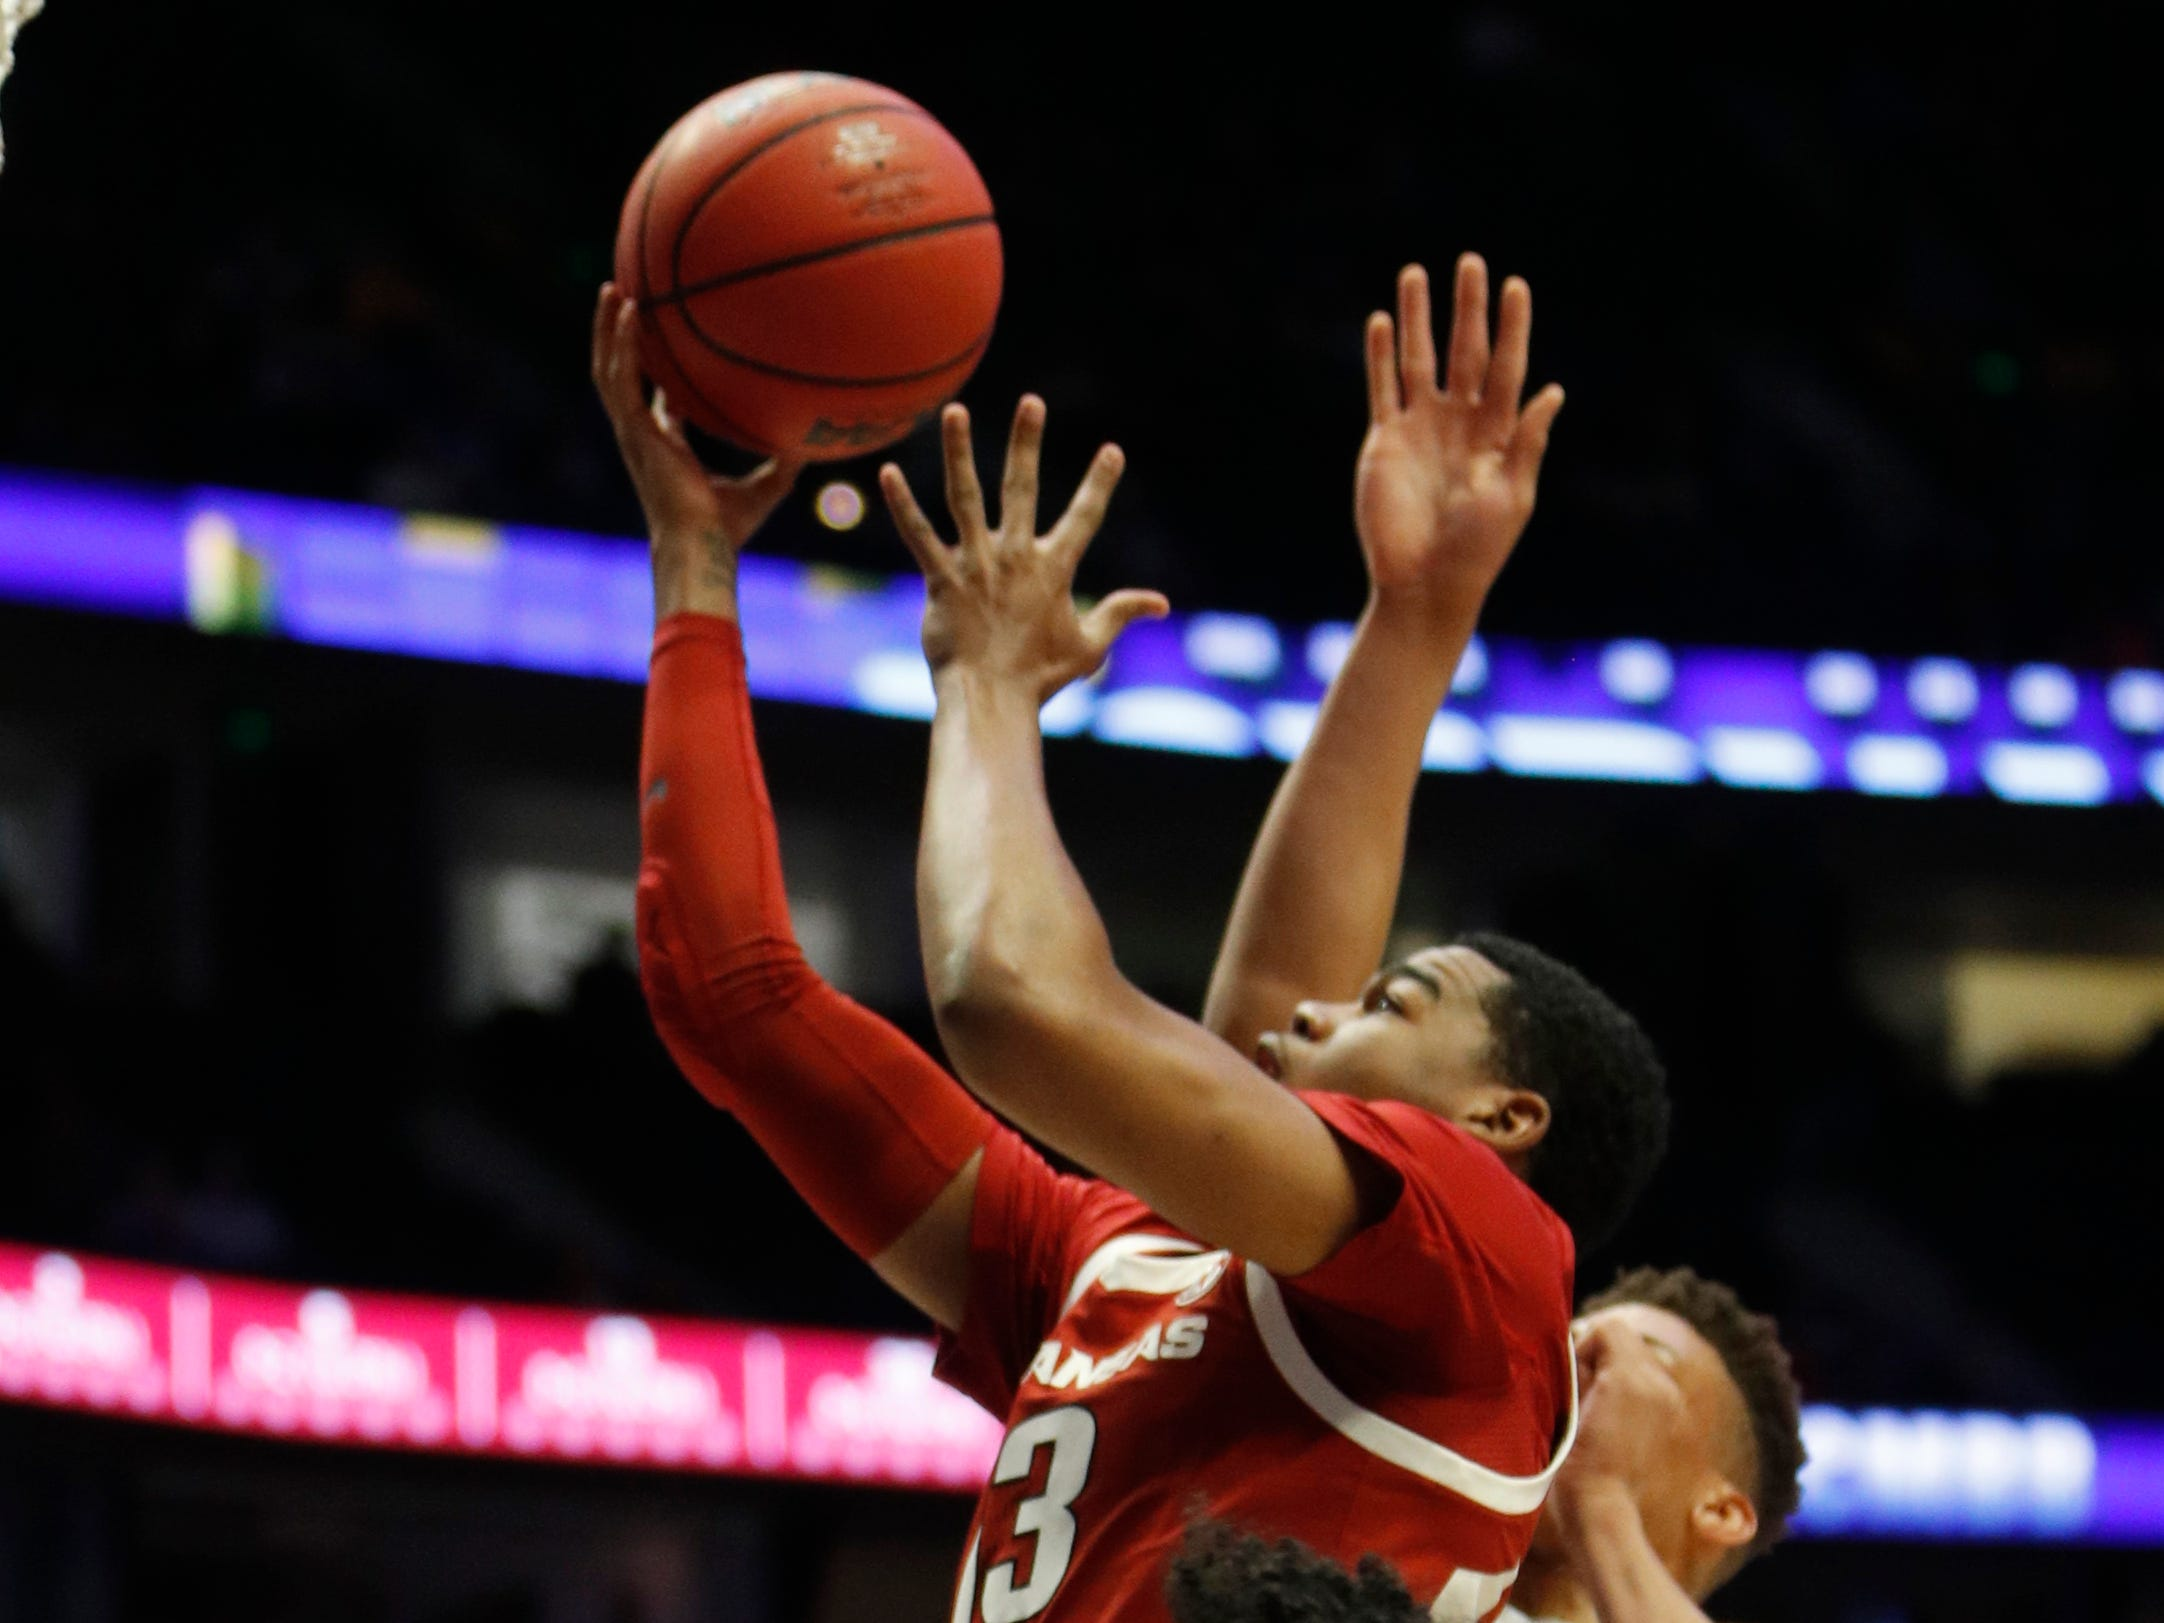 Arkansas guard Mason Jones (13) goes up for a shot during the first half of the SEC Men's Basketball Tournament game at Bridgestone Arena in Nashville, Tenn., Thursday, March 14, 2019.